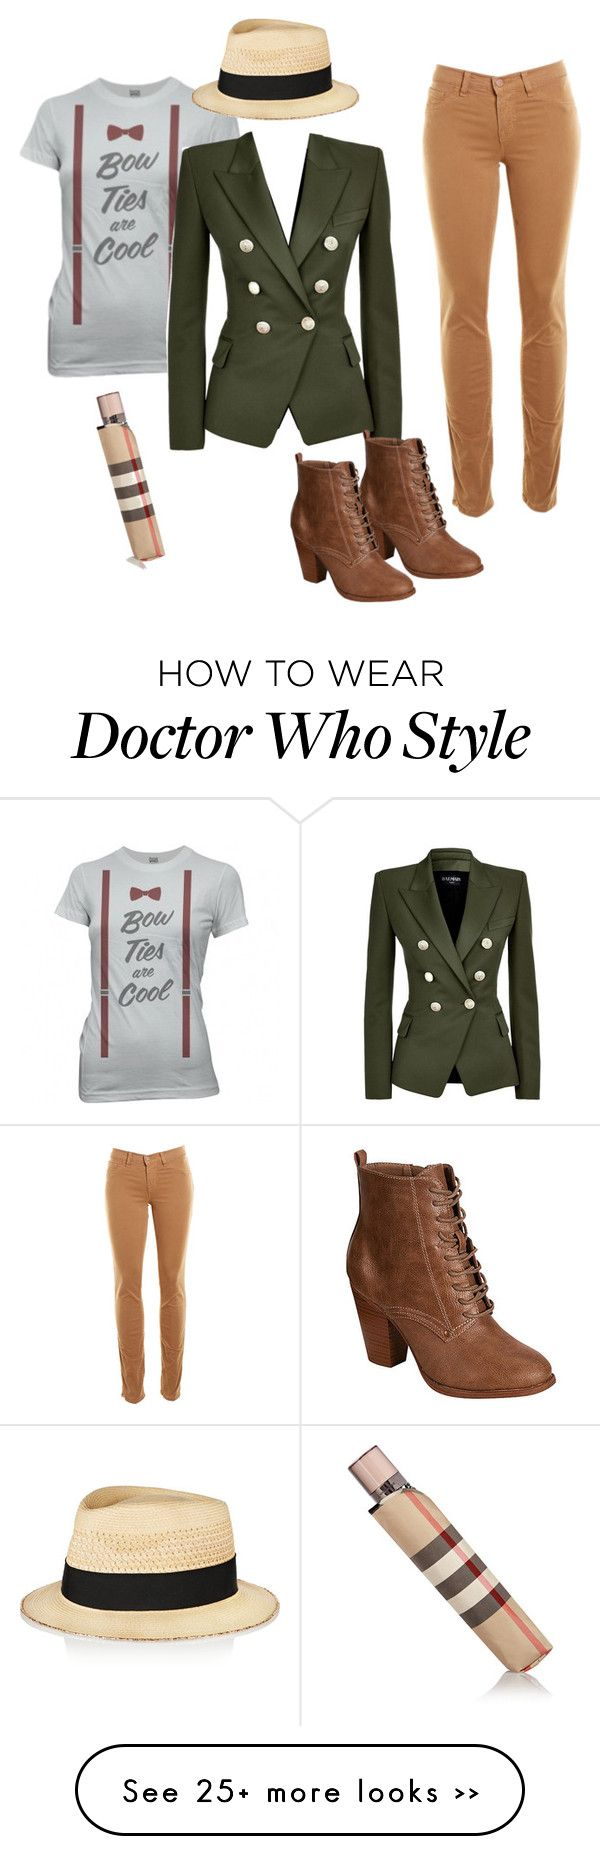 """Doctastic"" by chuusui on Polyvore"